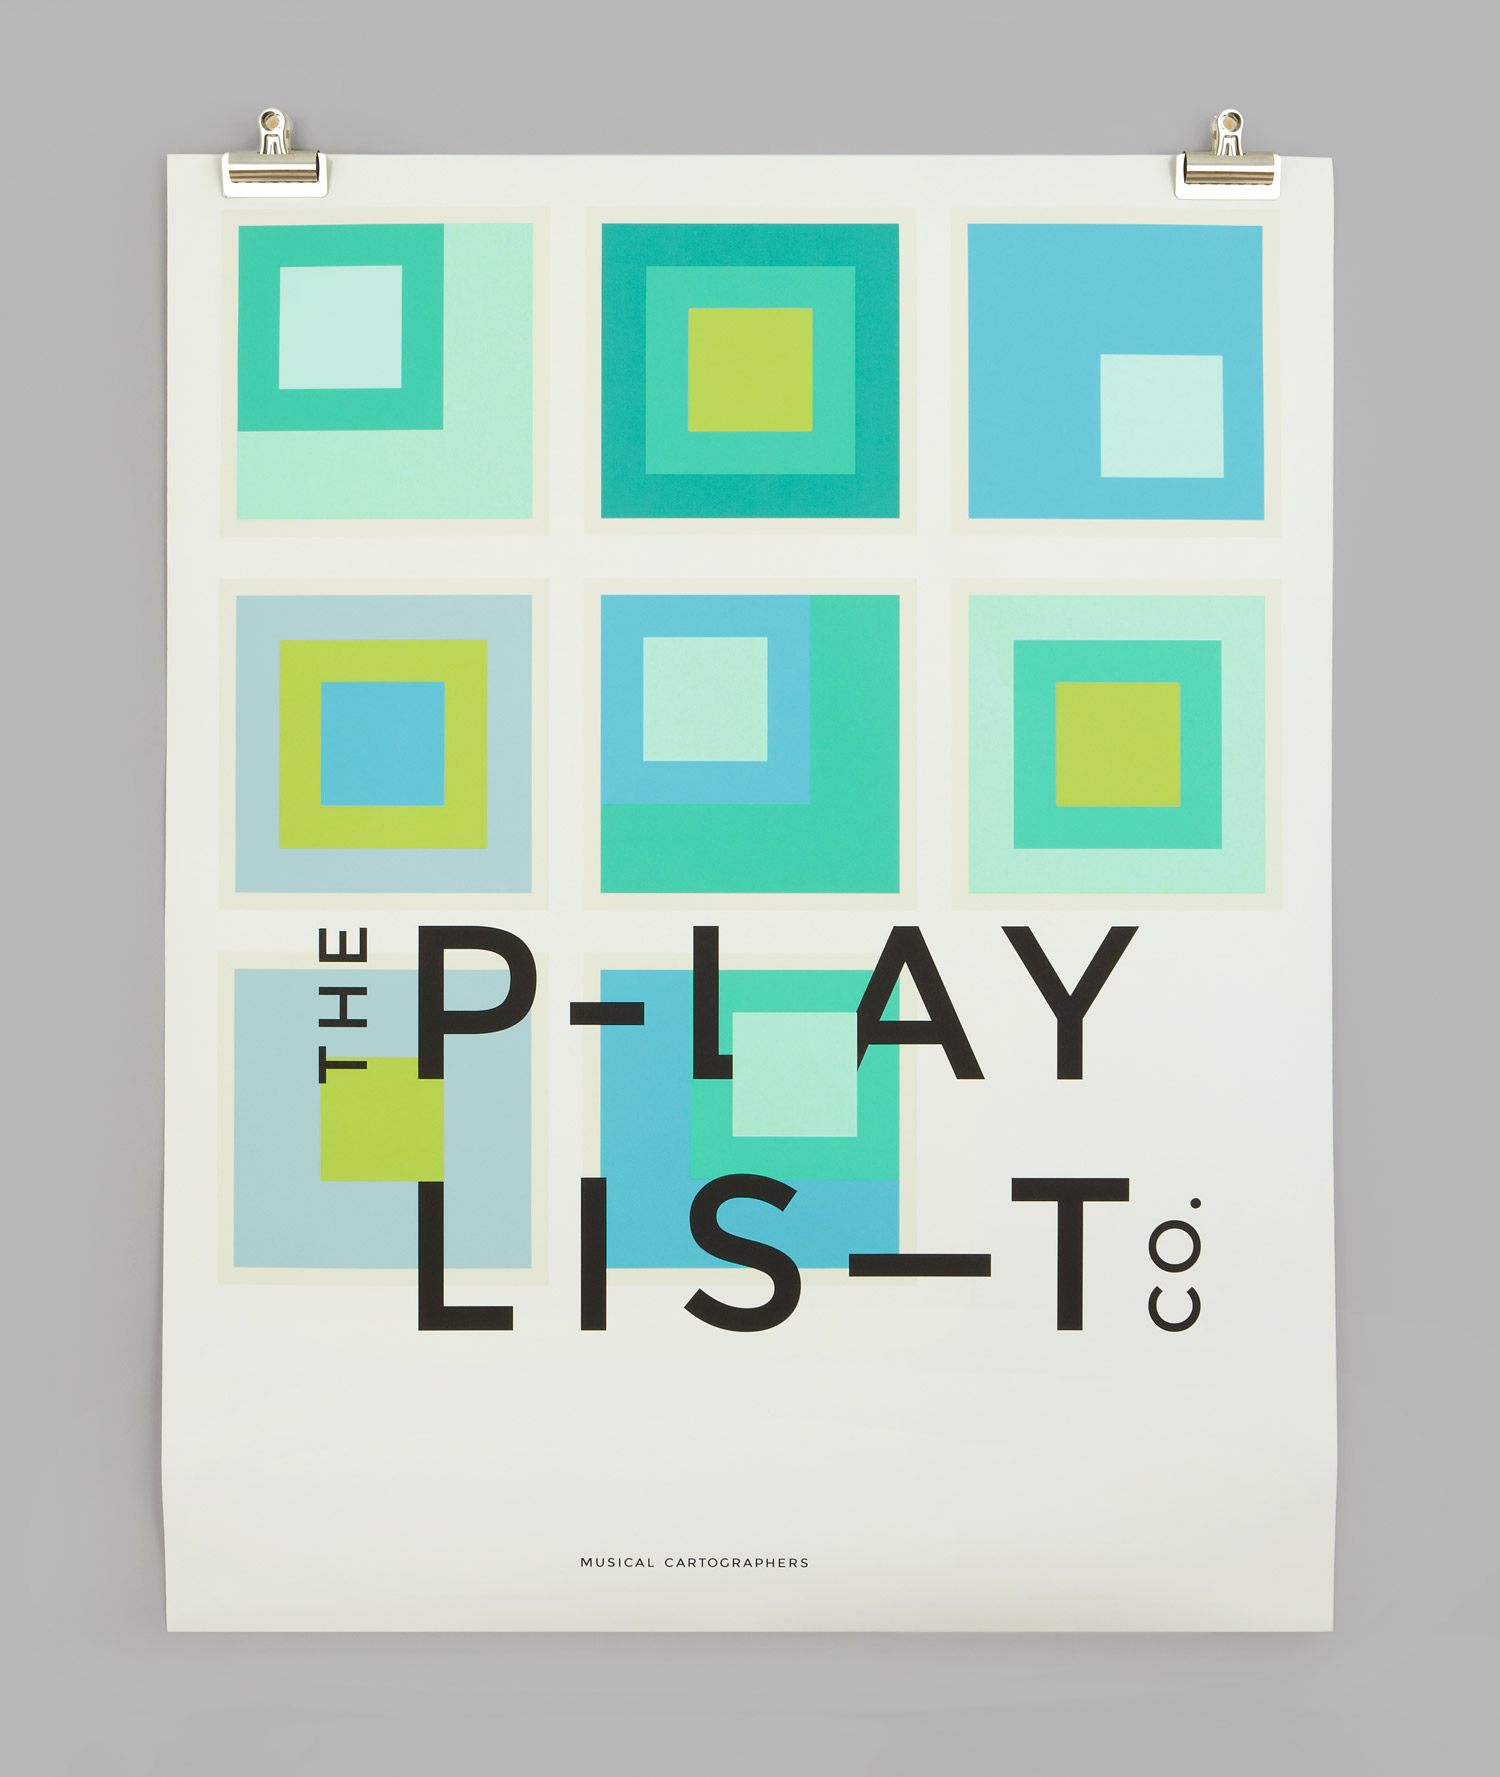 Brand identity and poster for Toronto based custom event soundtrack business The Playlist Co. by graphic design studio Blok